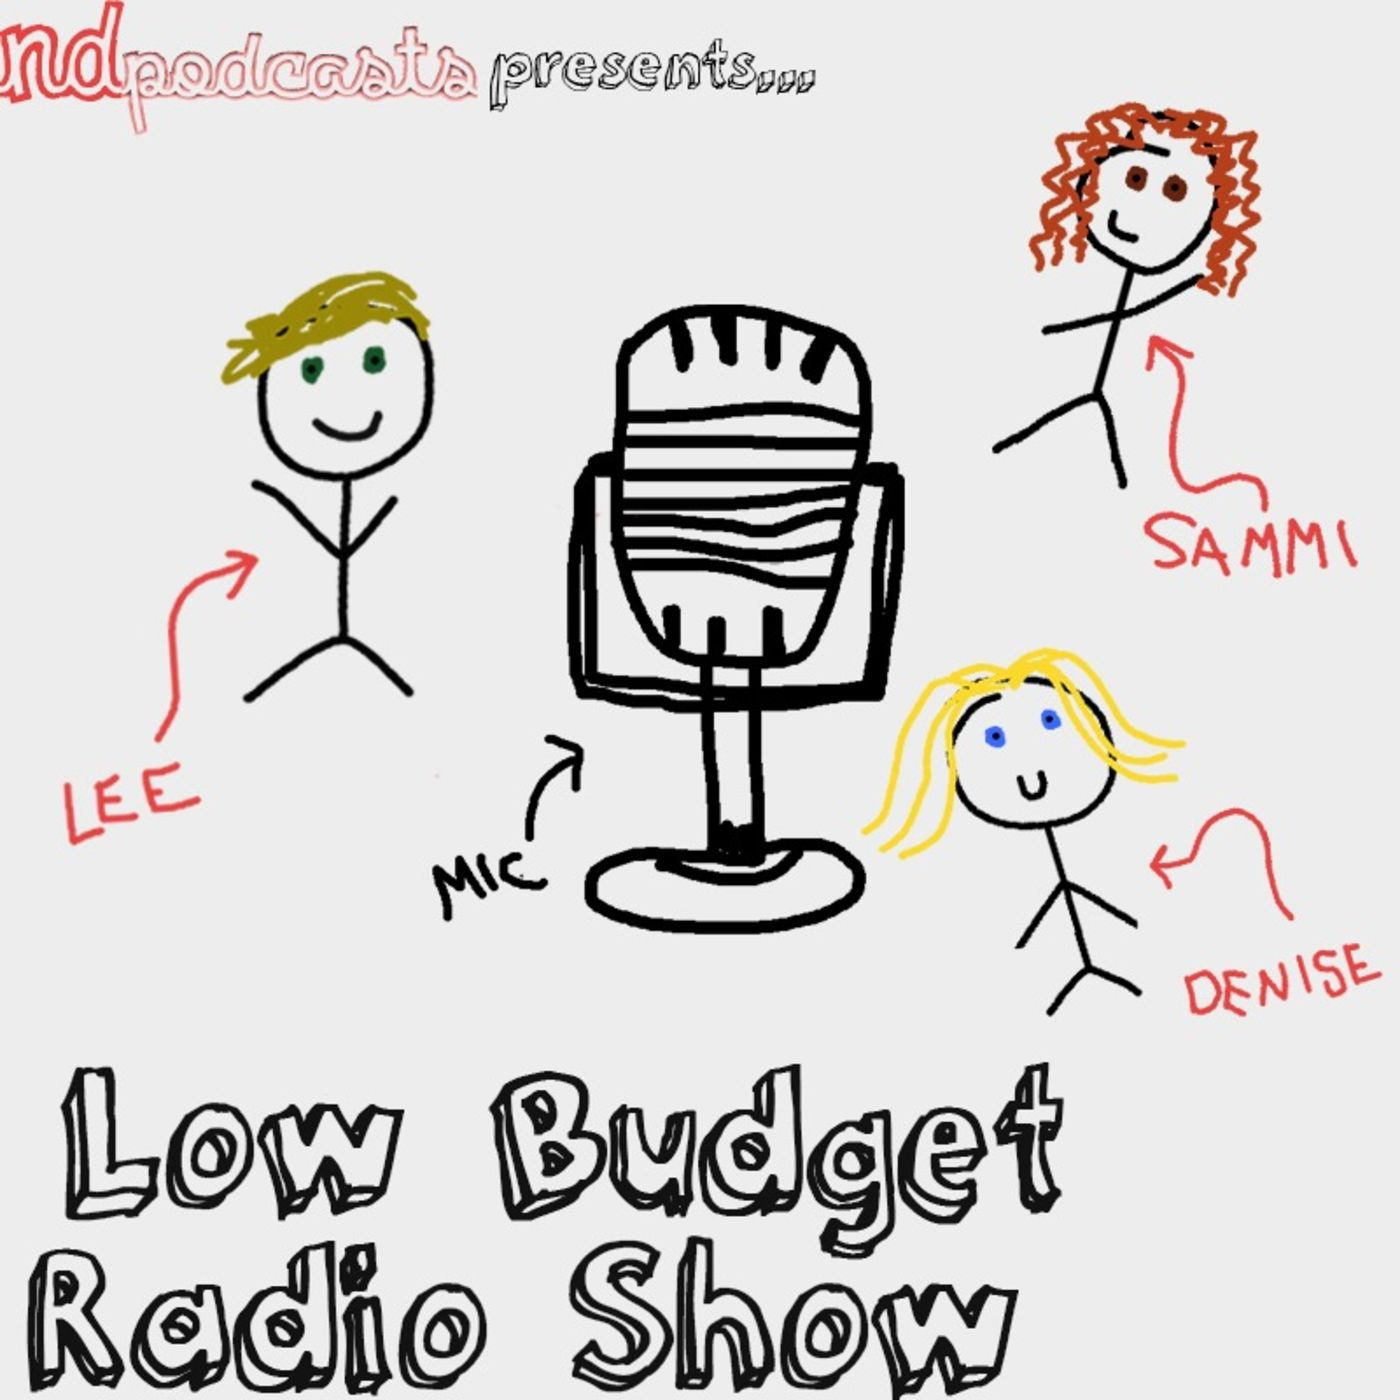 Make Like a Tree - Low Budget Radio Show Ep. 10